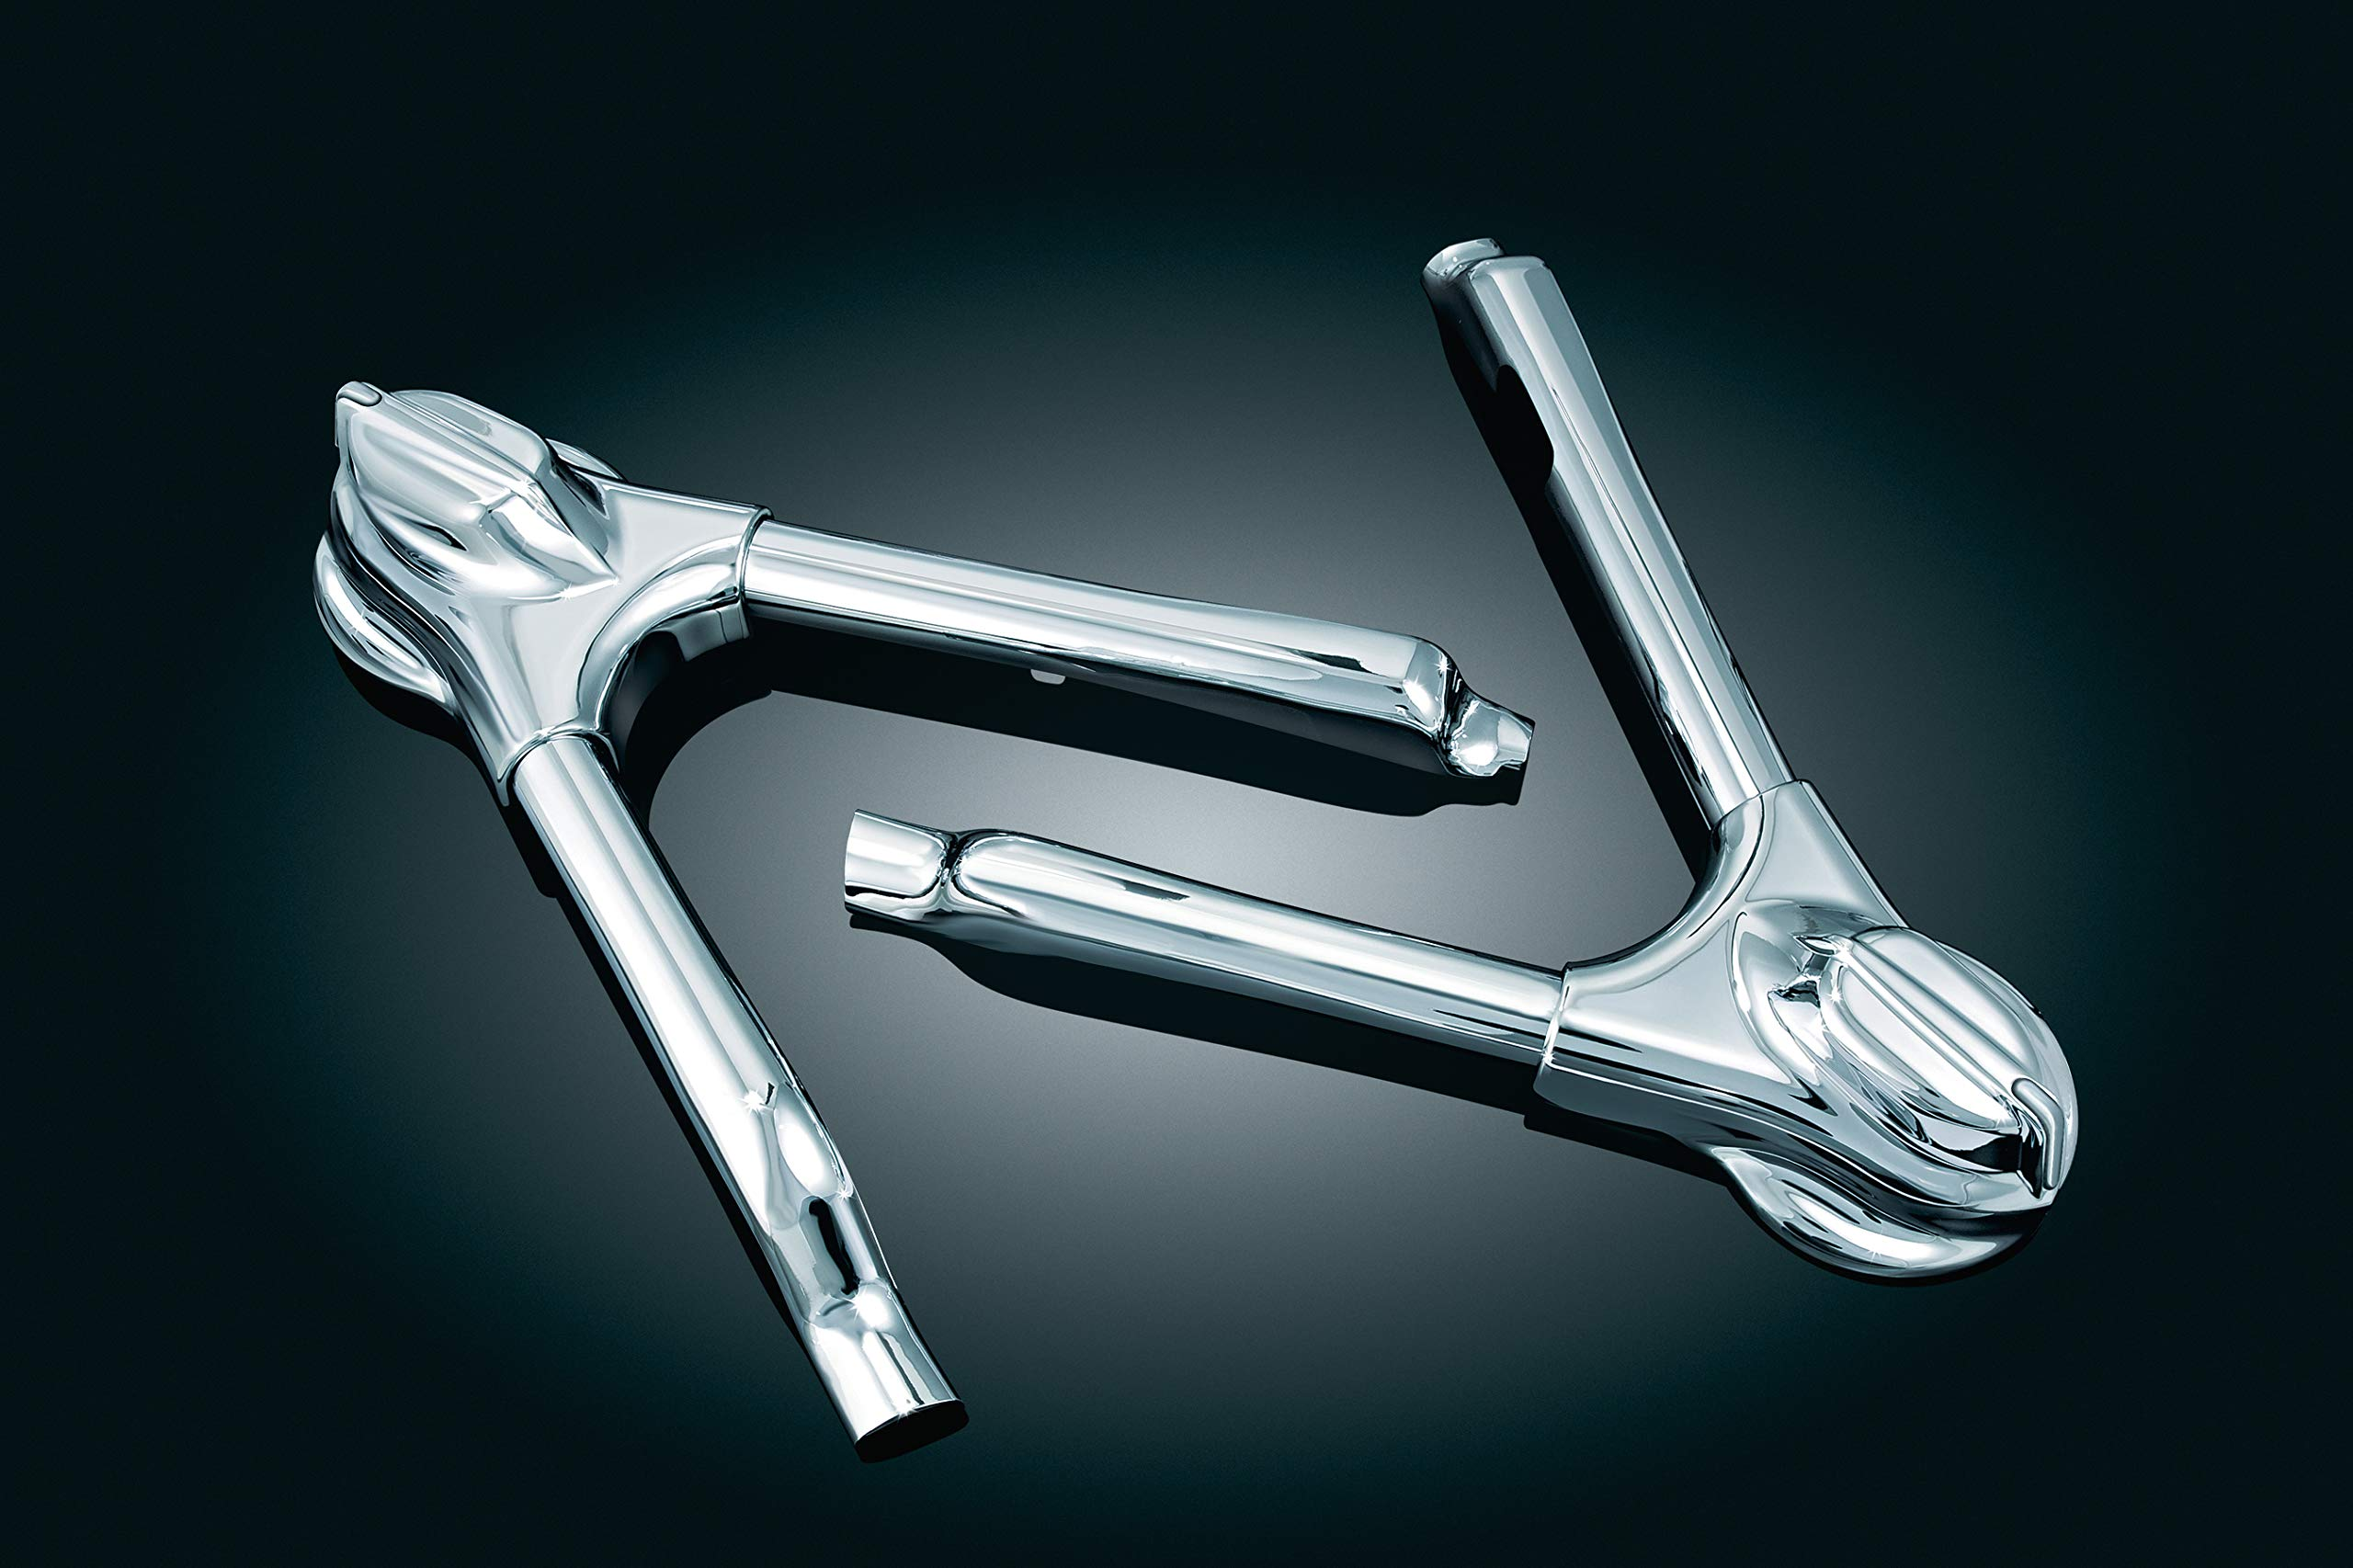 Kuryakyn 7815 Motorcycle Accent Accessory: Swingarm Covers for 2008-17 Harley-Davidson Softail Motorcycles, Chrome